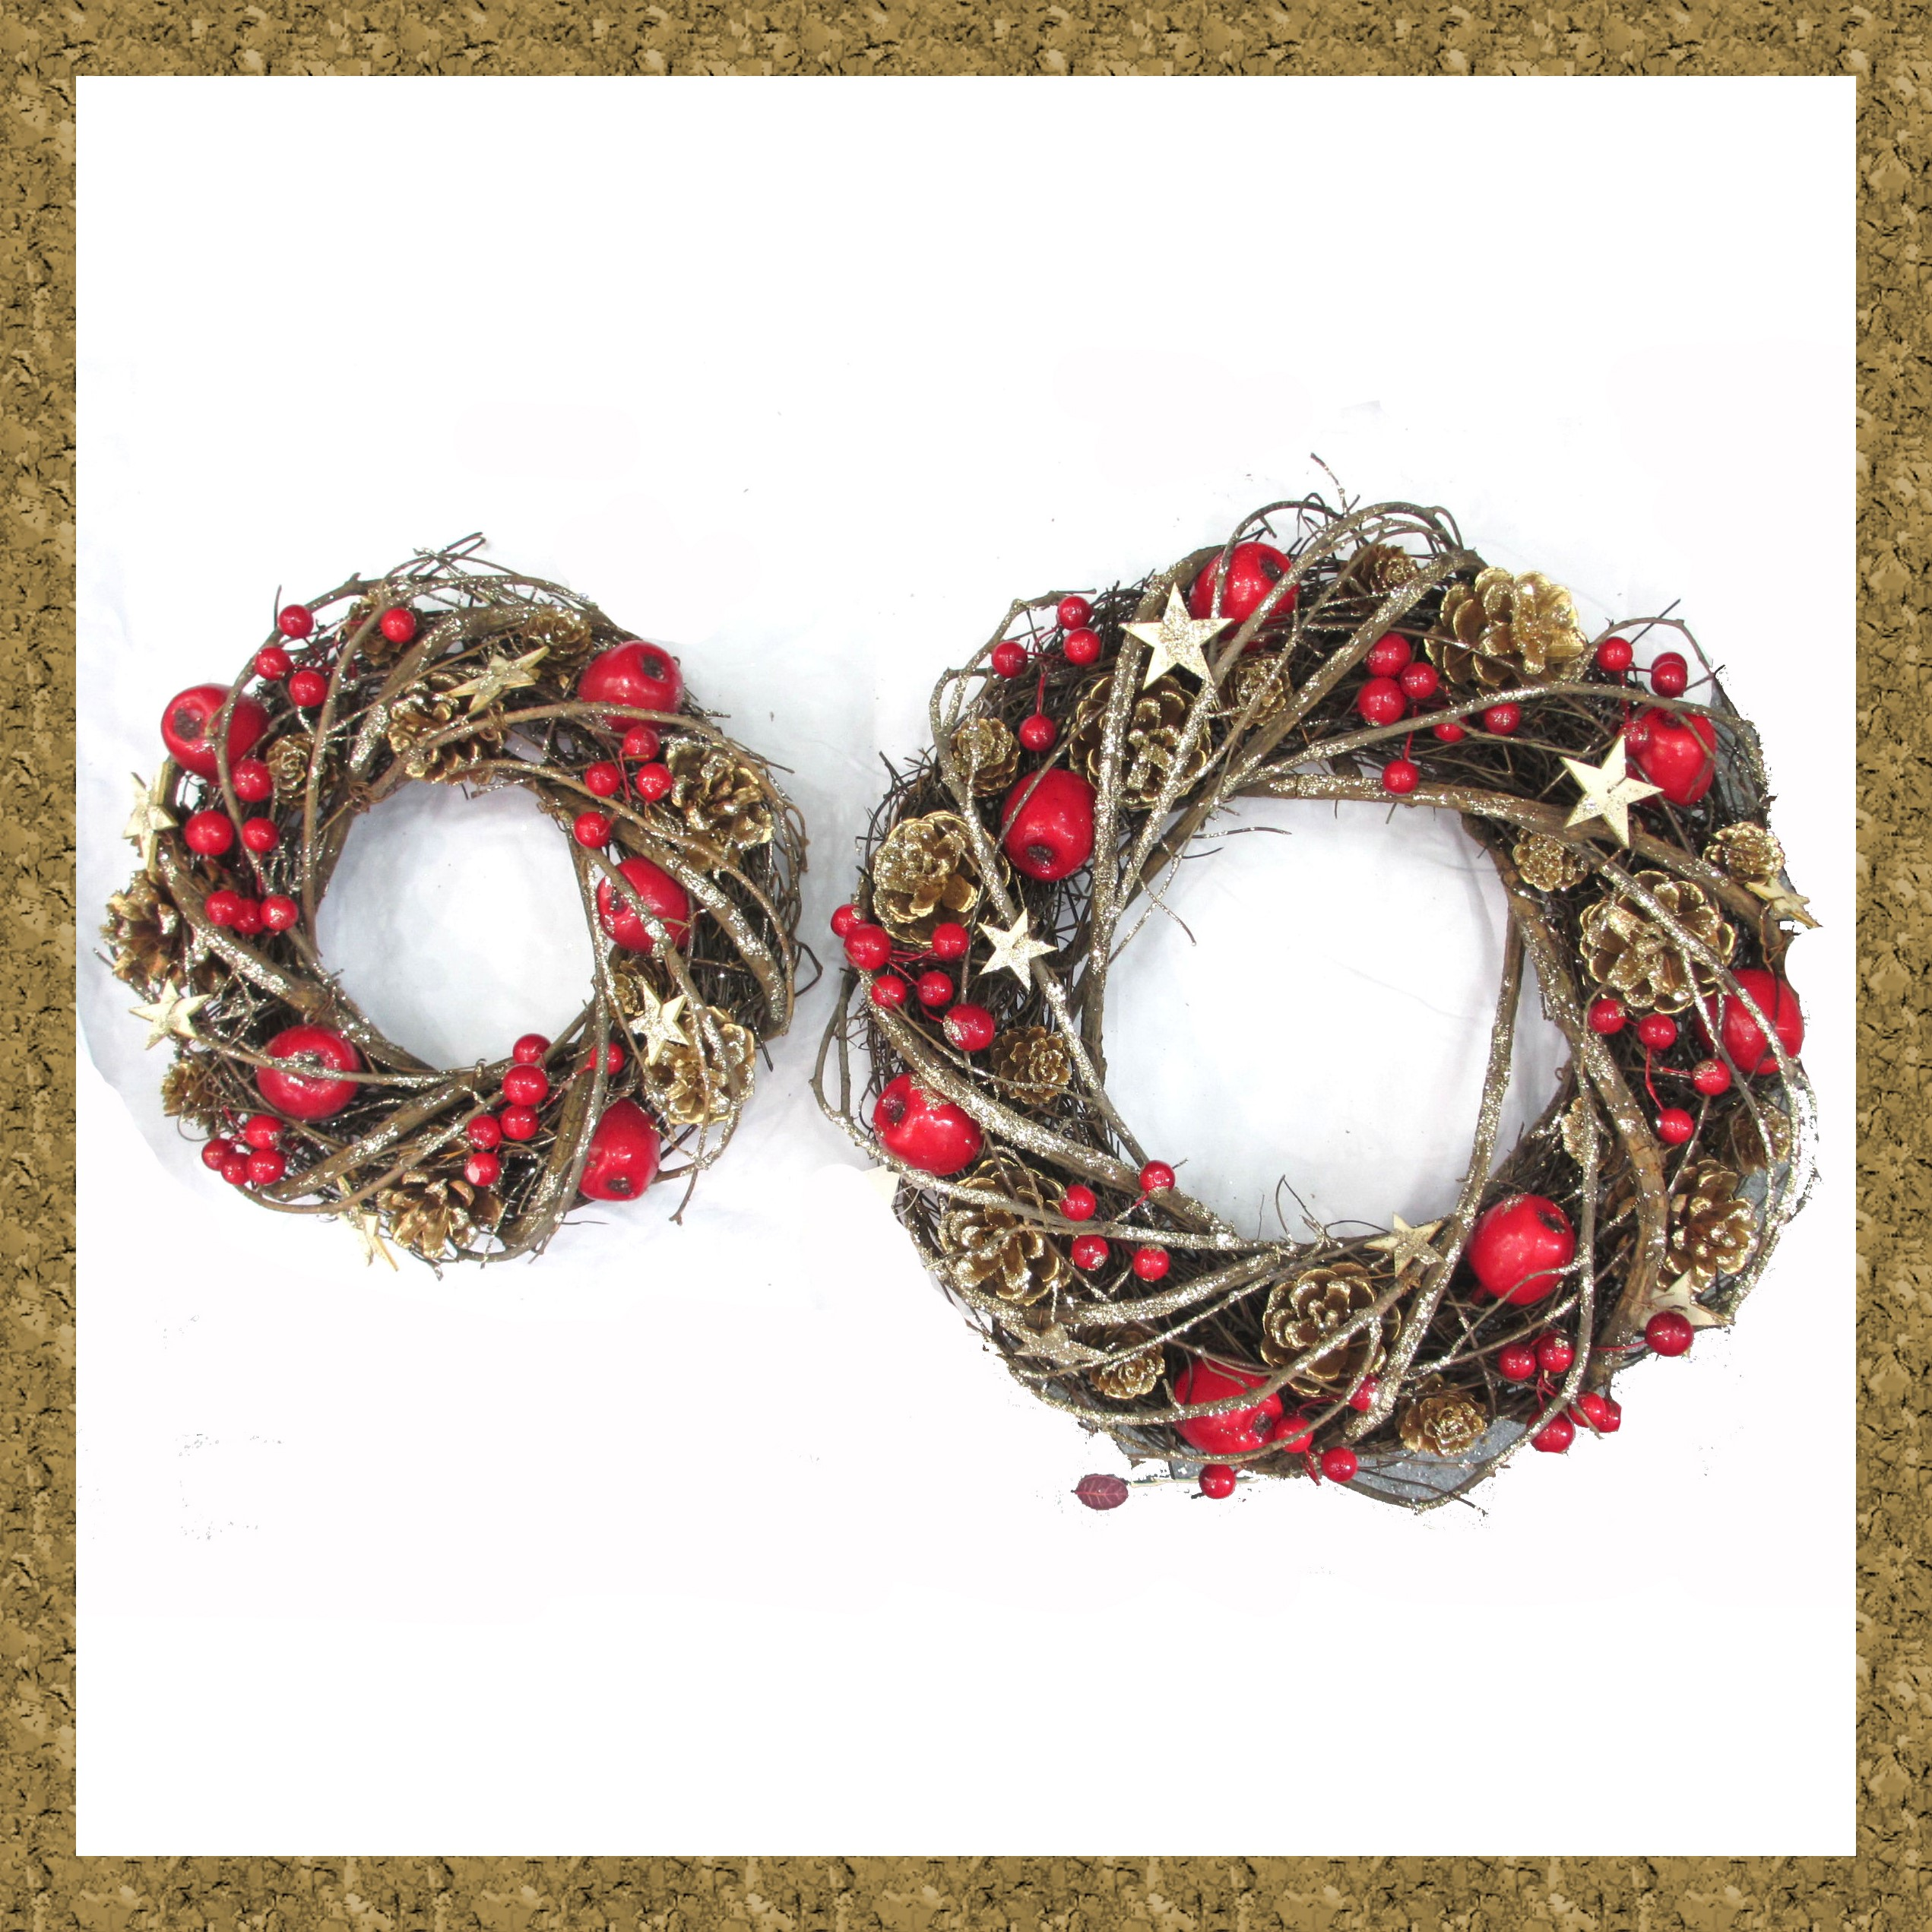 WREATH 24cm NATURAL/RED